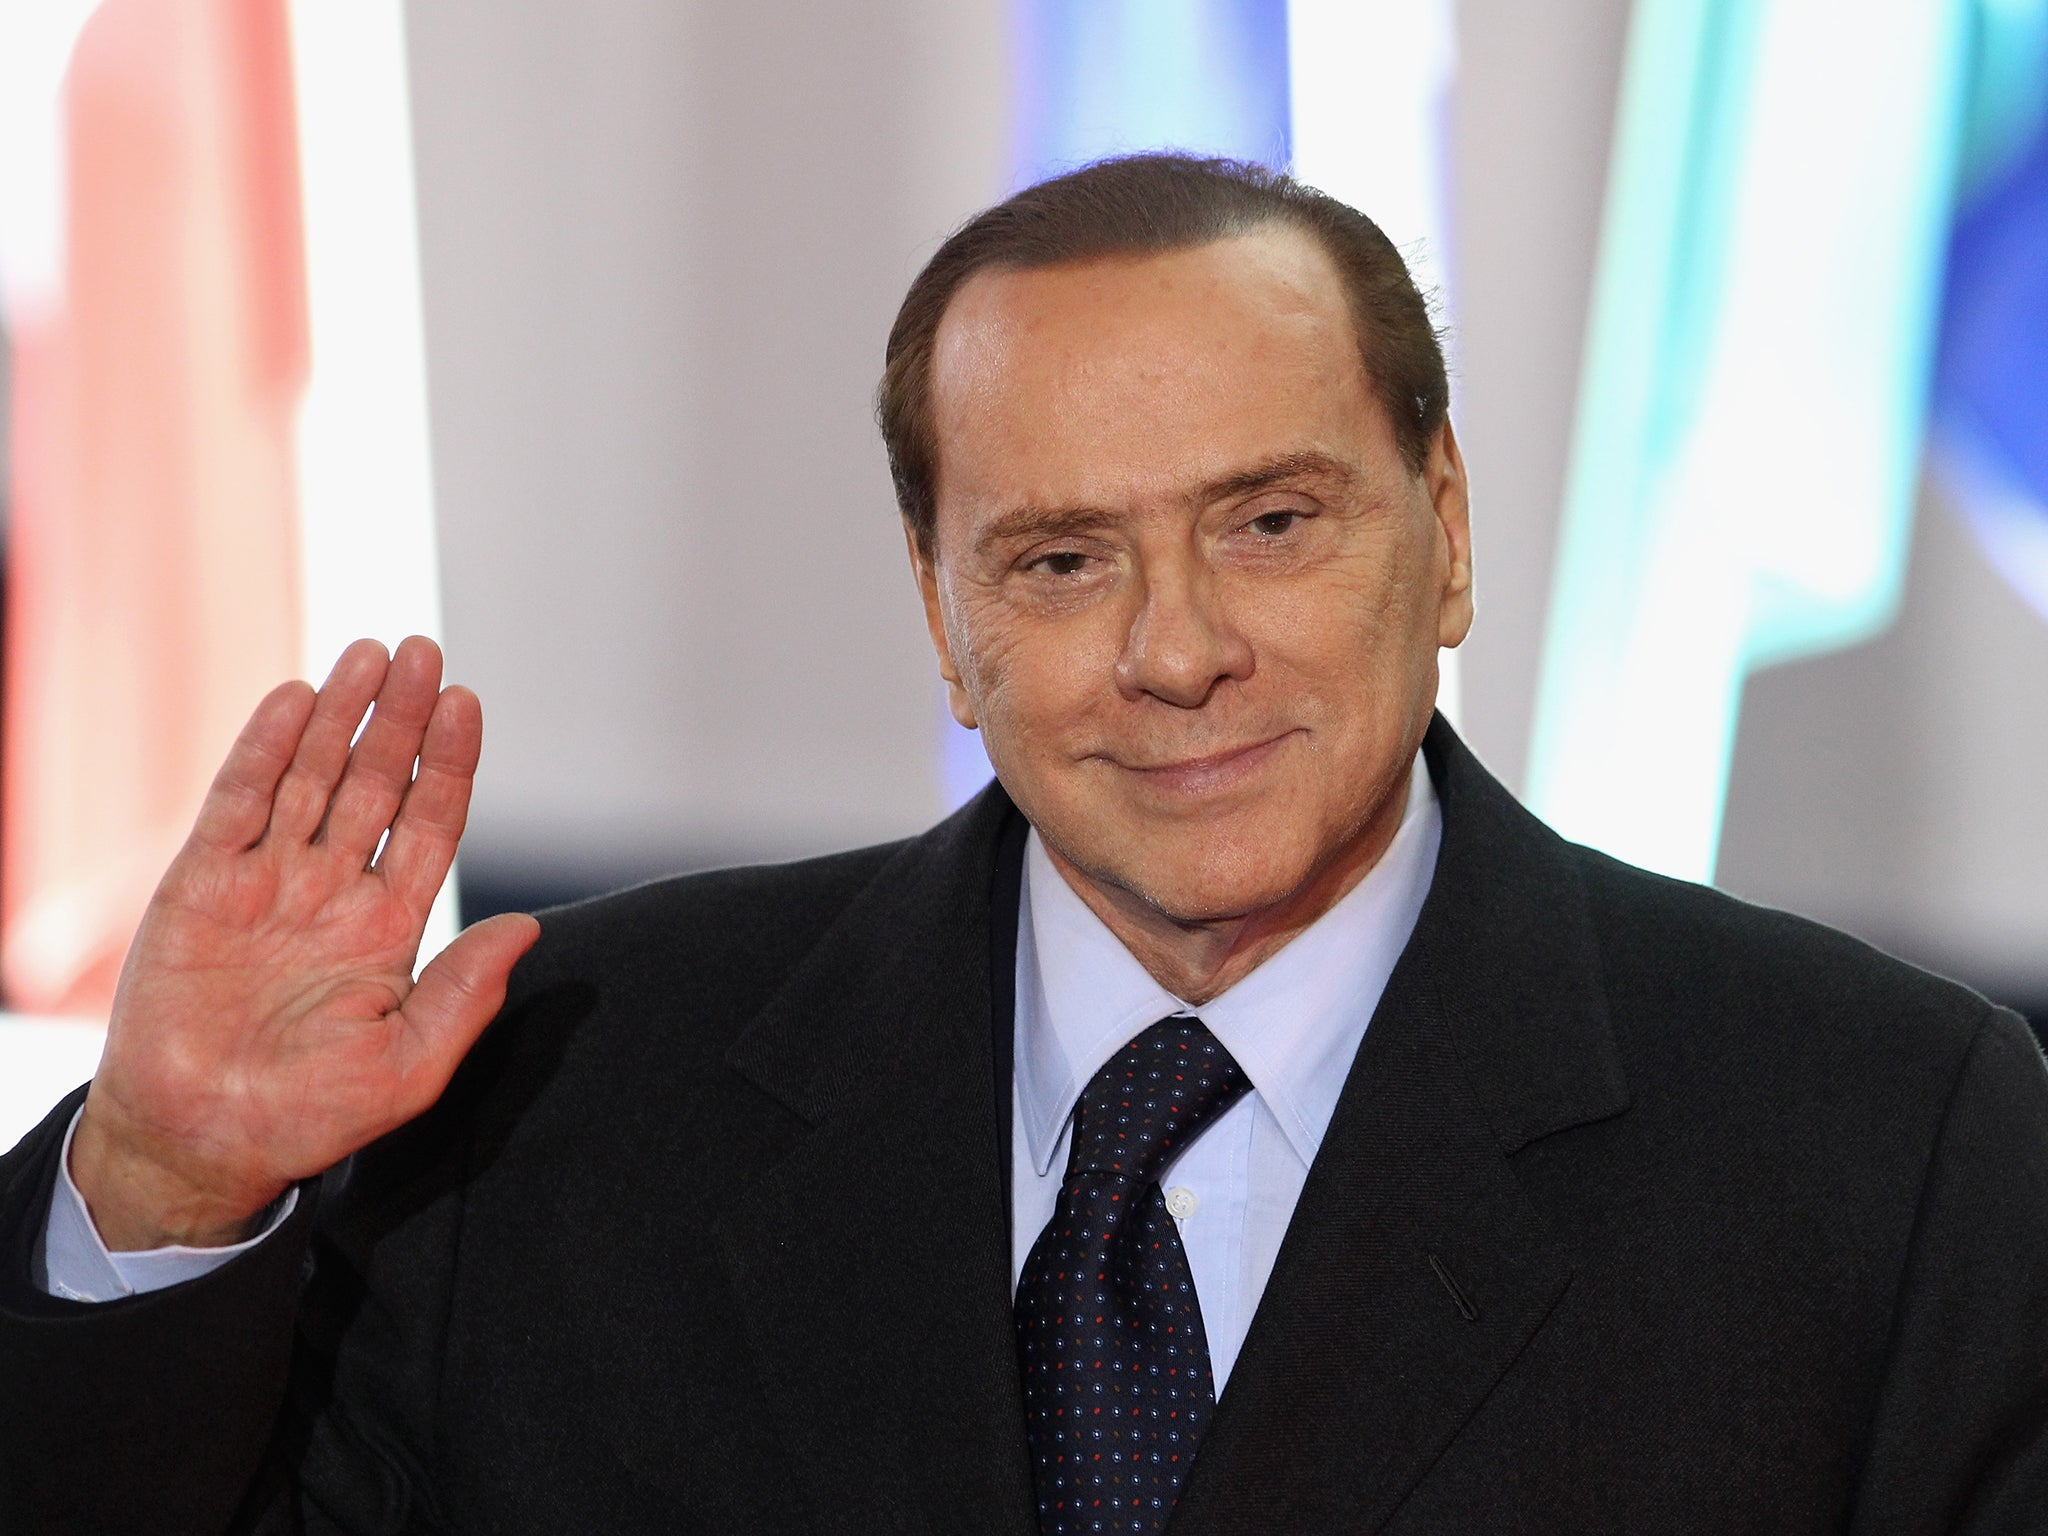 Silvio Berlusconi wants to marry a girl who is almost 50 years younger than him 25.09.2013 31